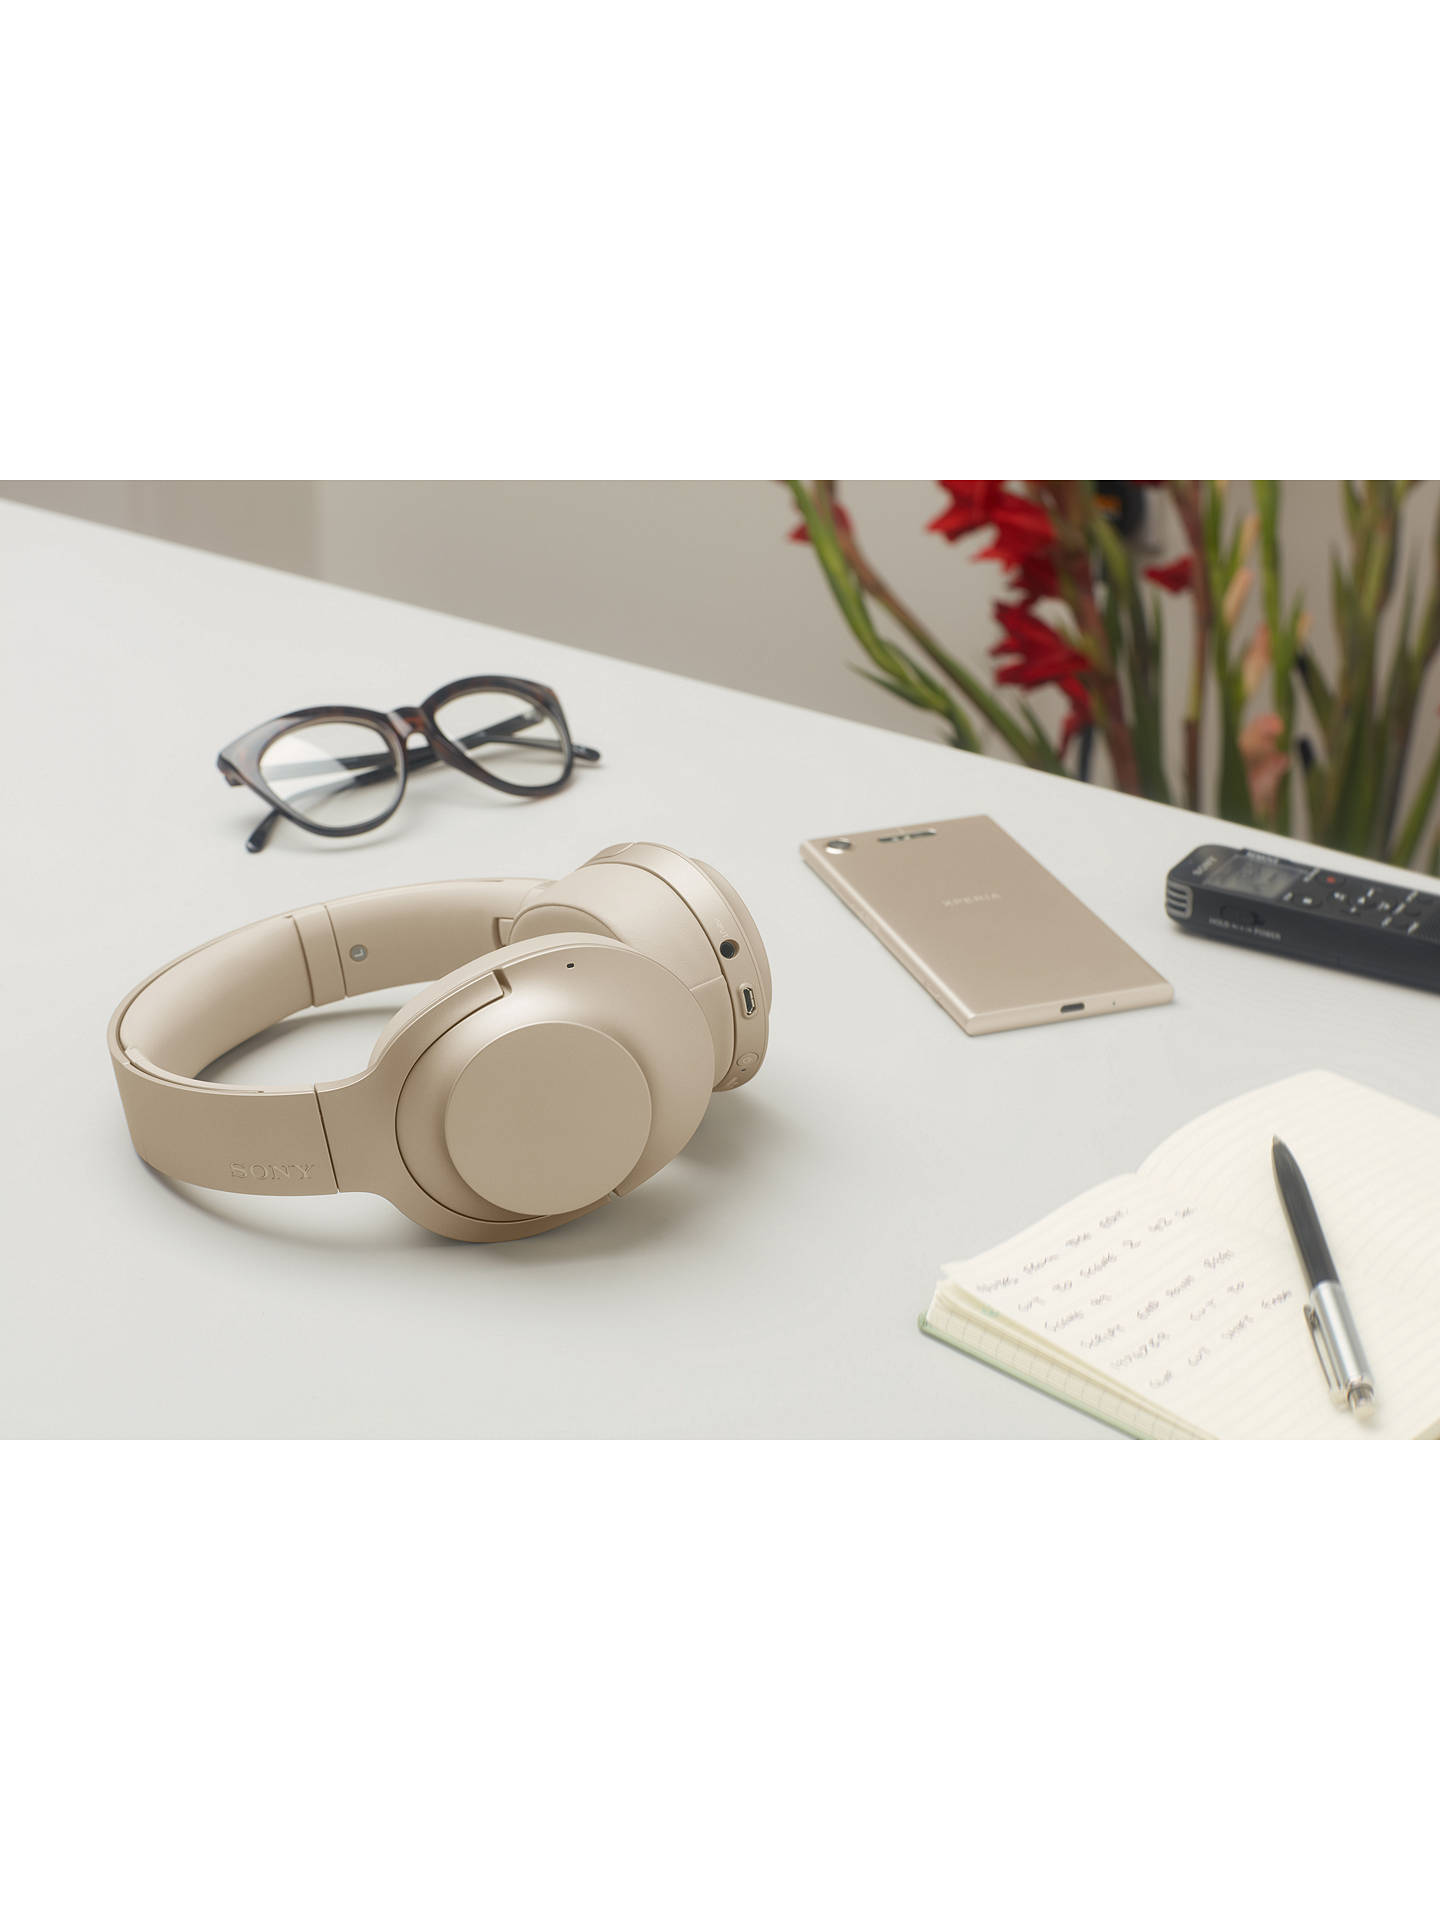 Sony WH-H900N h ear on 2 Wireless Bluetooth NFC Over-Ear Headphones with  Noise Cancellation, Gold